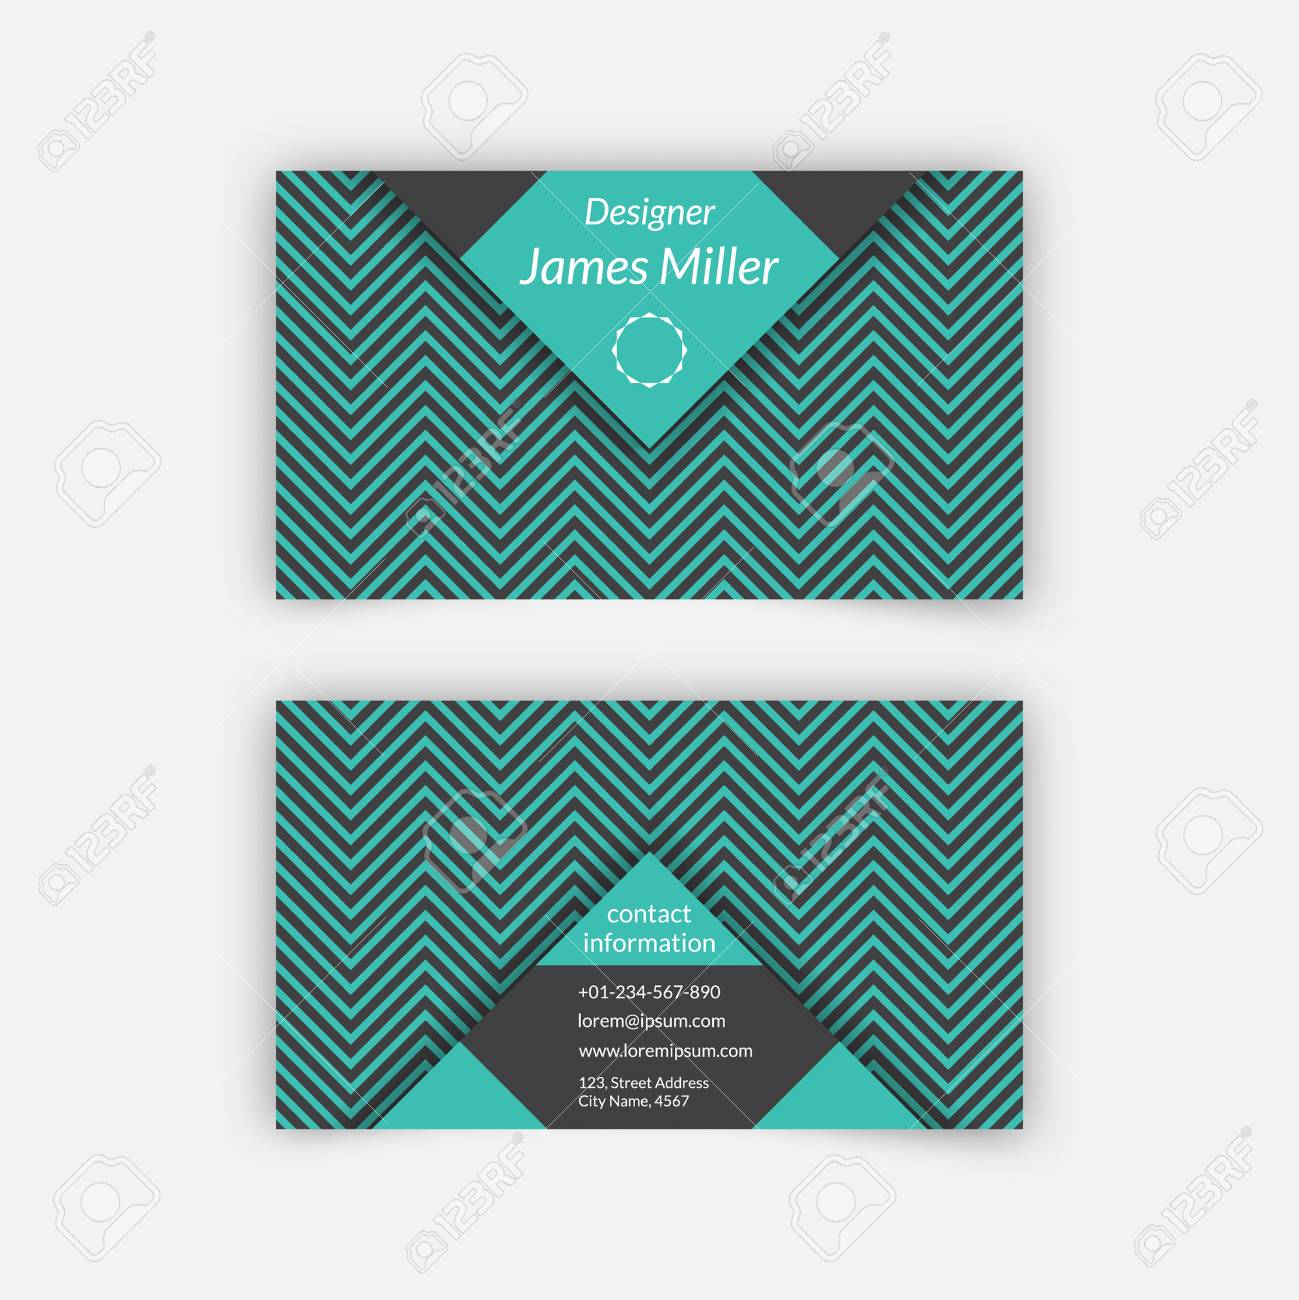 Business card blank template with textured background from zigzag business card blank template with textured background from zigzag strips and triangle shapes minimal elegant cheaphphosting Gallery